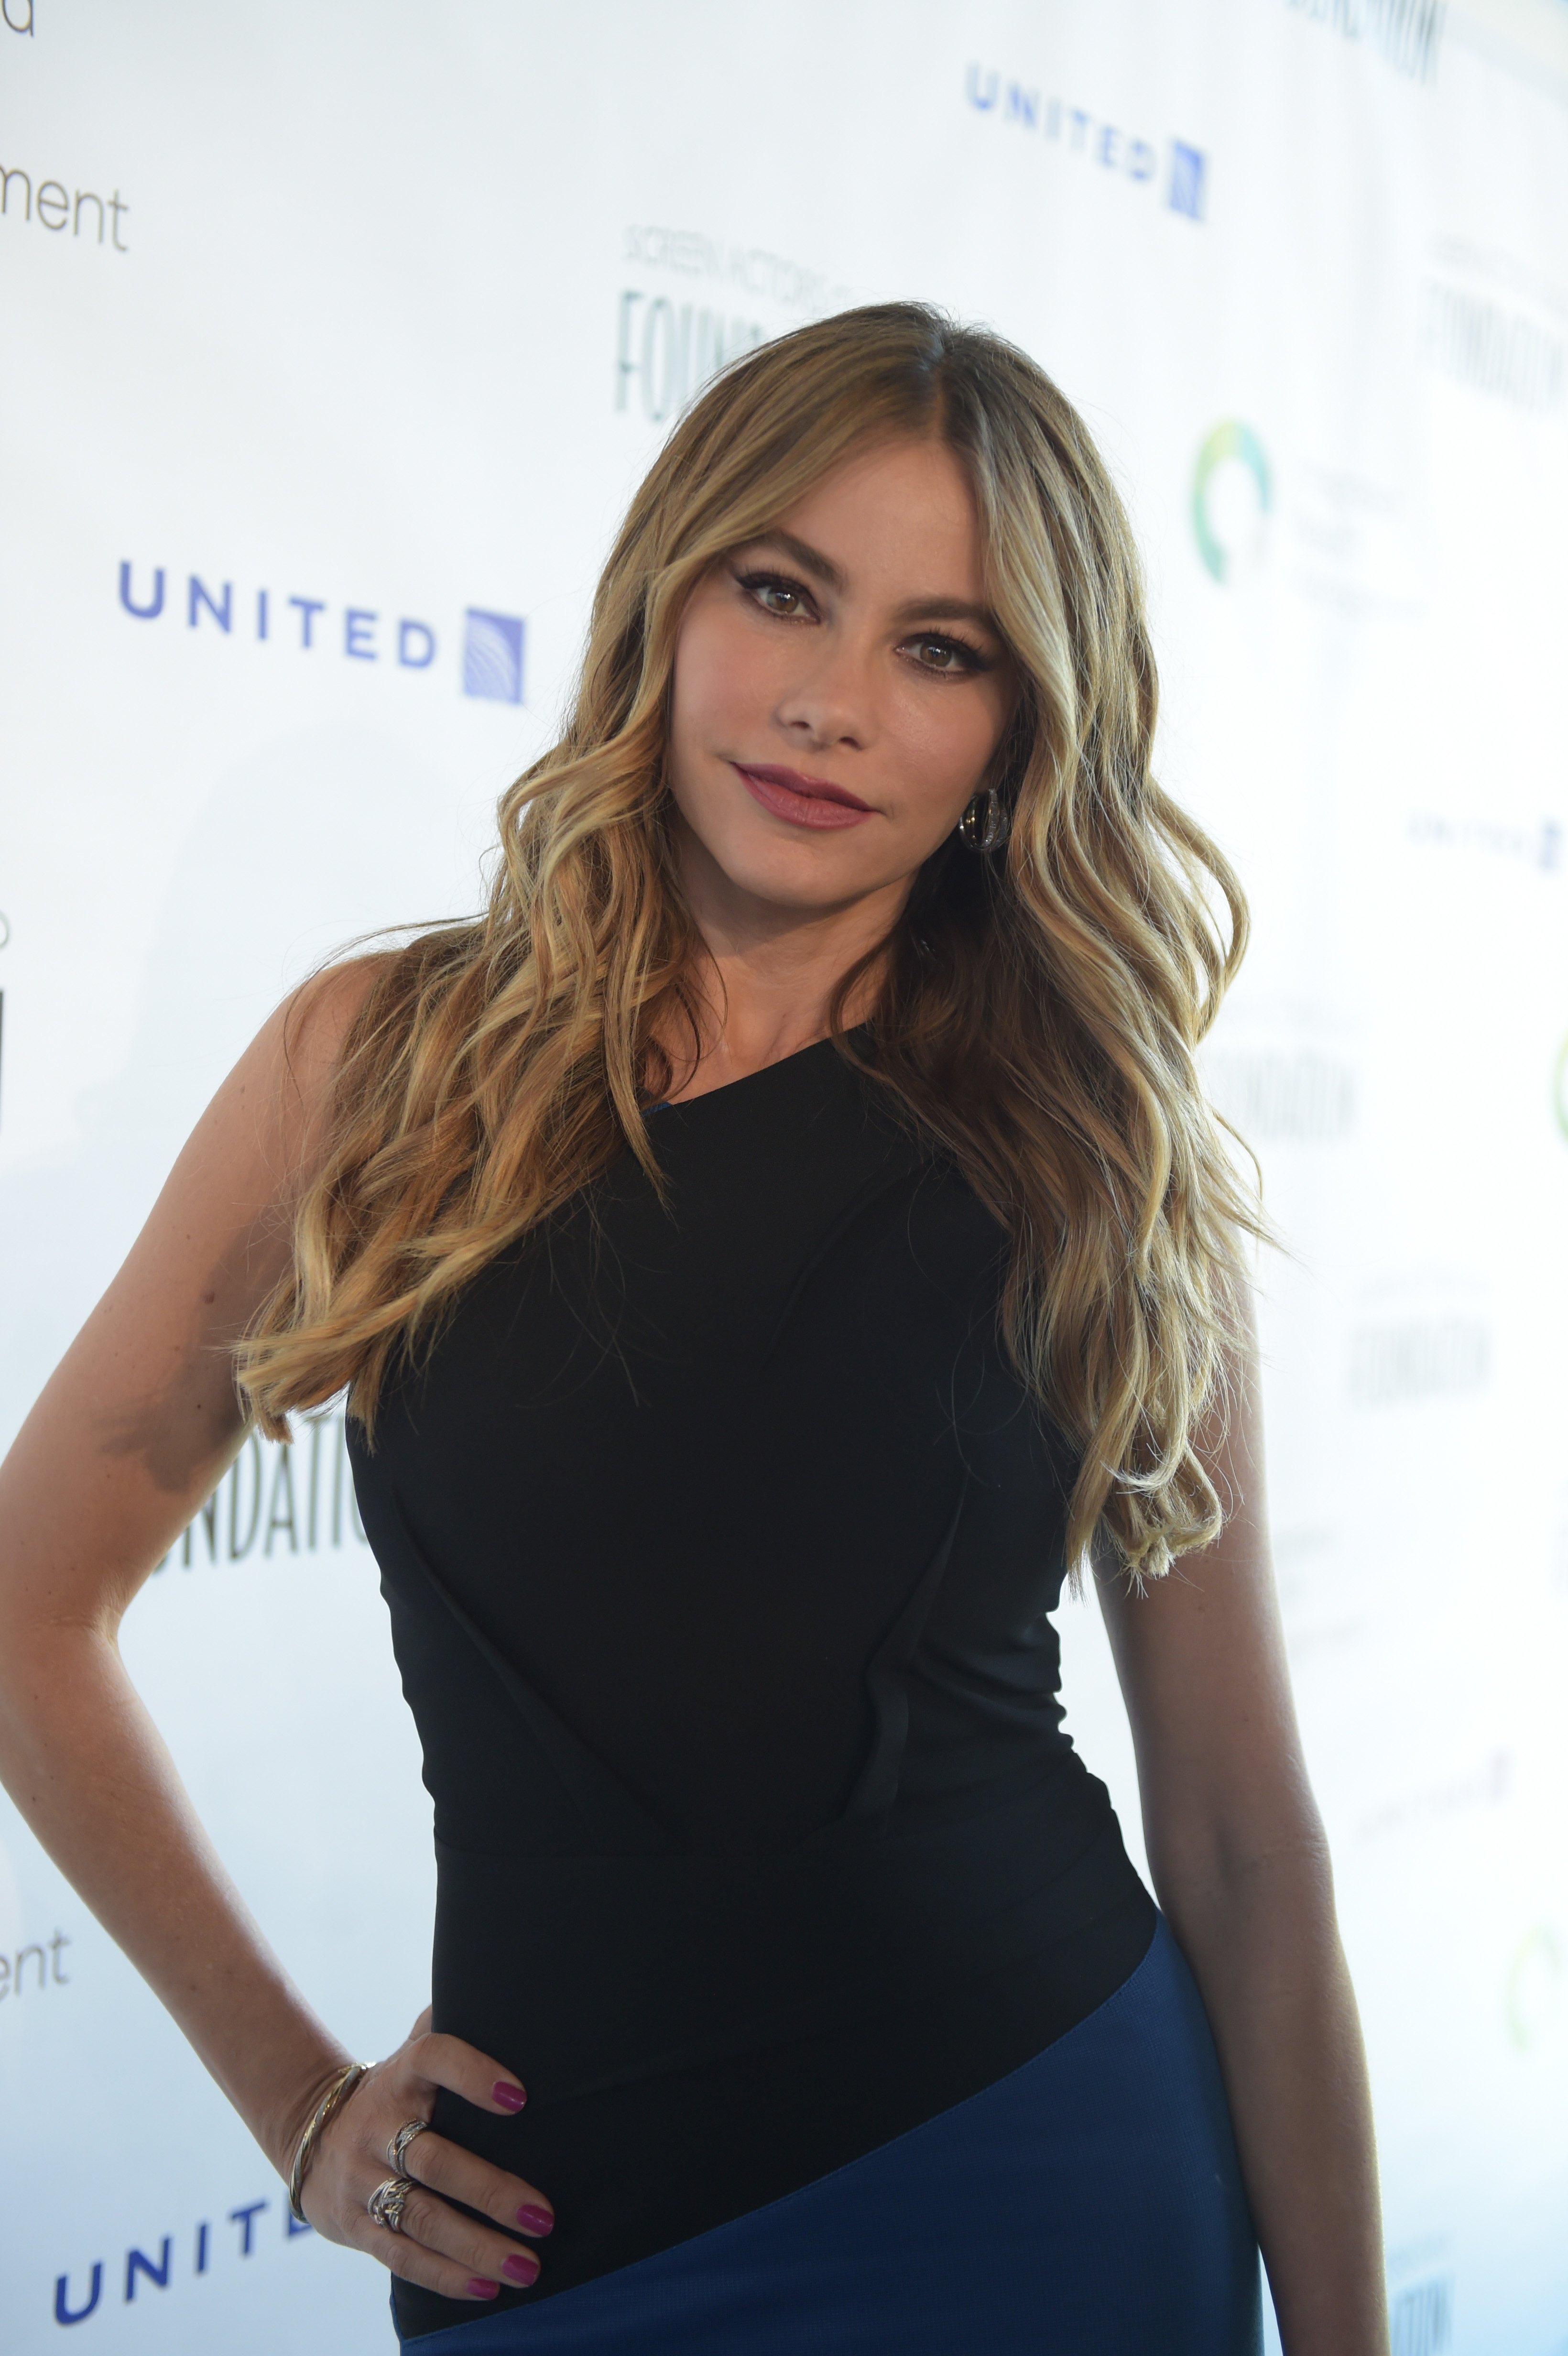 Sofia Vergara attends The Screen Actors Guild Foundation's 6th Annual Los Angeles Golf Classic on June 8, 2015 in Burbank, California. (Photo by Jason Kempin/Getty Images for The Screen Actors Guild Foundation)